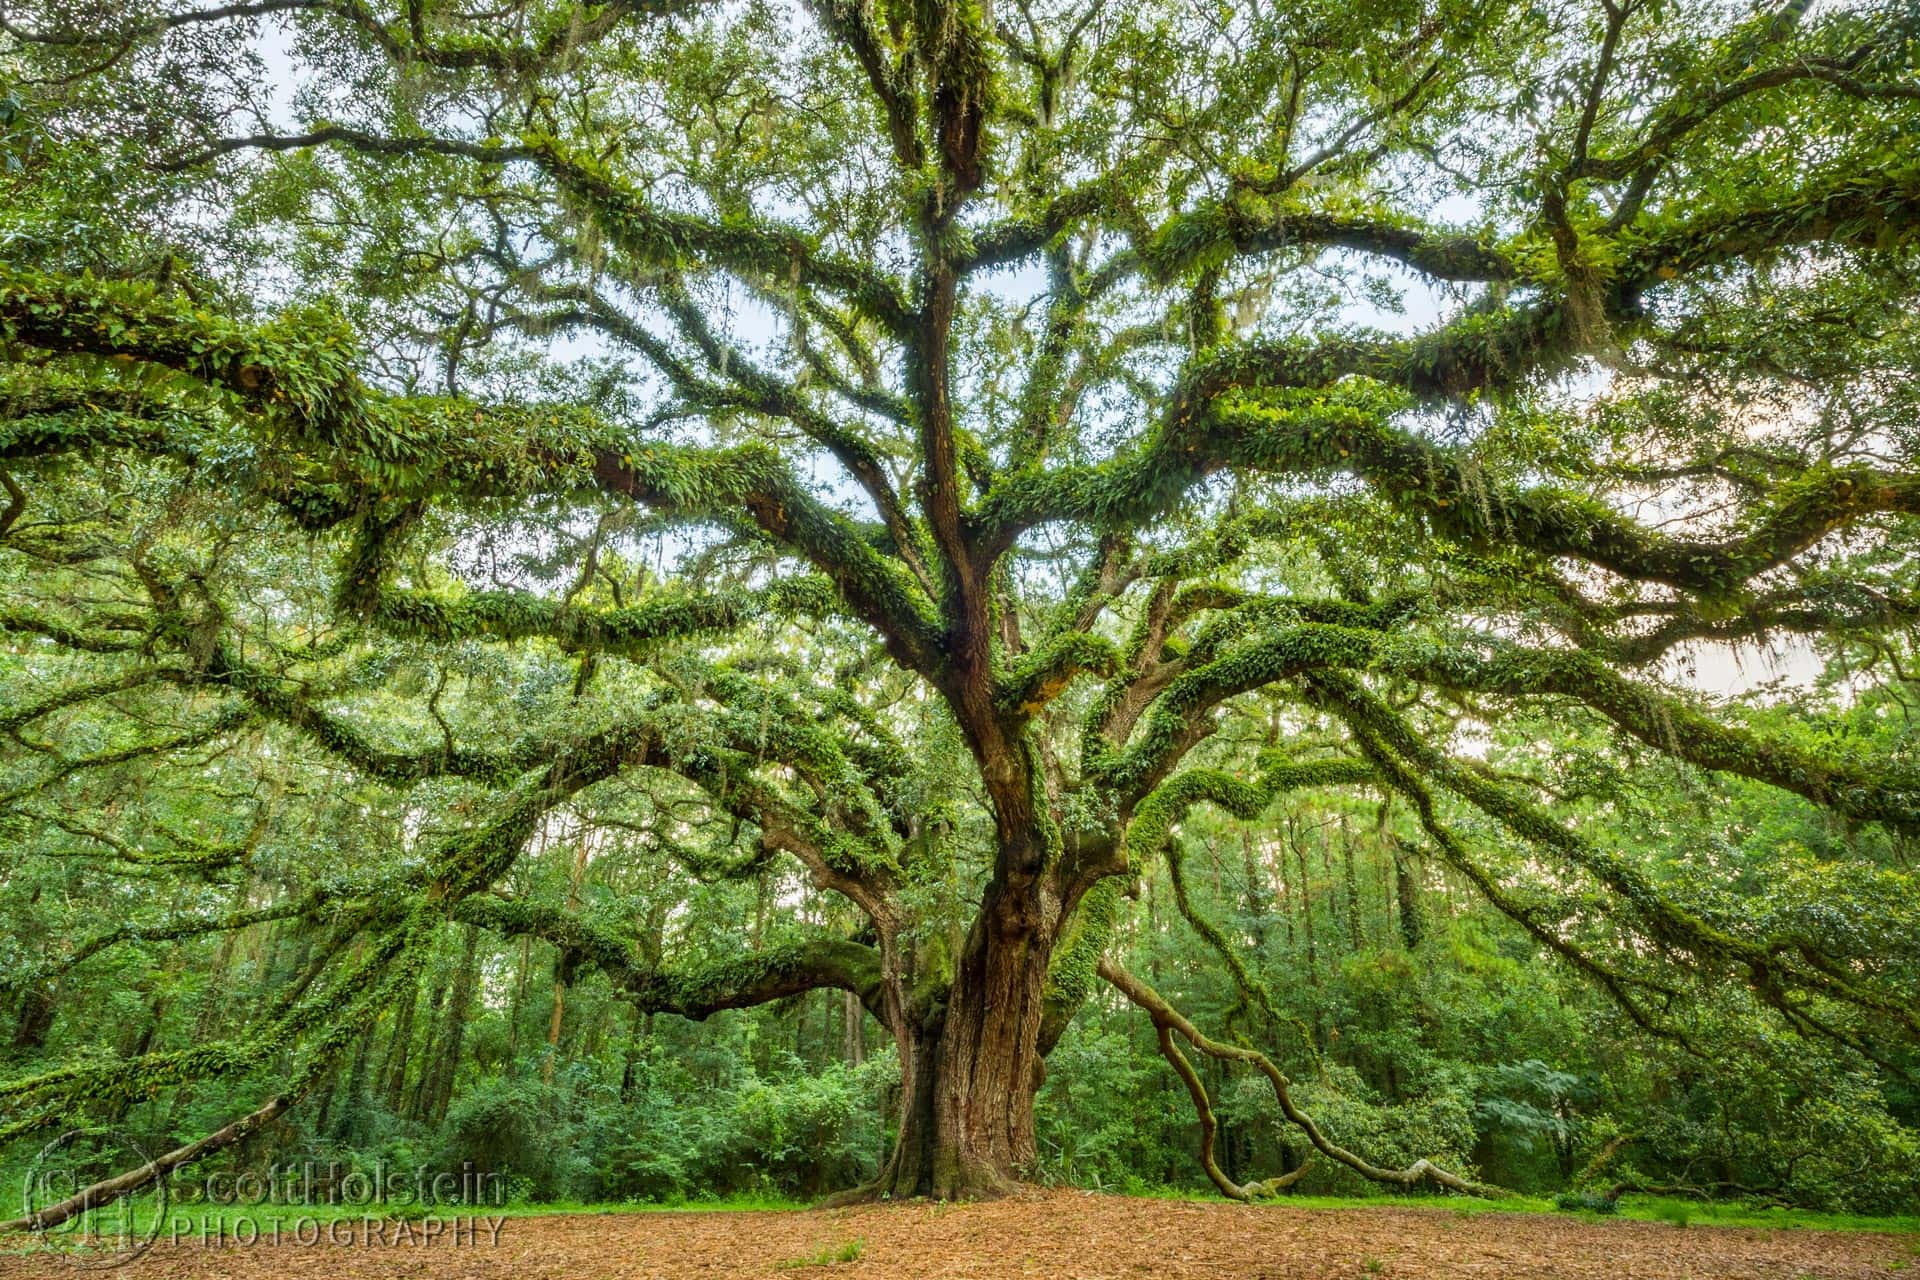 The Lichgate Oak tree is a large, sprawling Southern Live Oak (Quercus virginiana), covered in resurrection ferns, at Lichgate on High Road in Tallahassee, Florida.